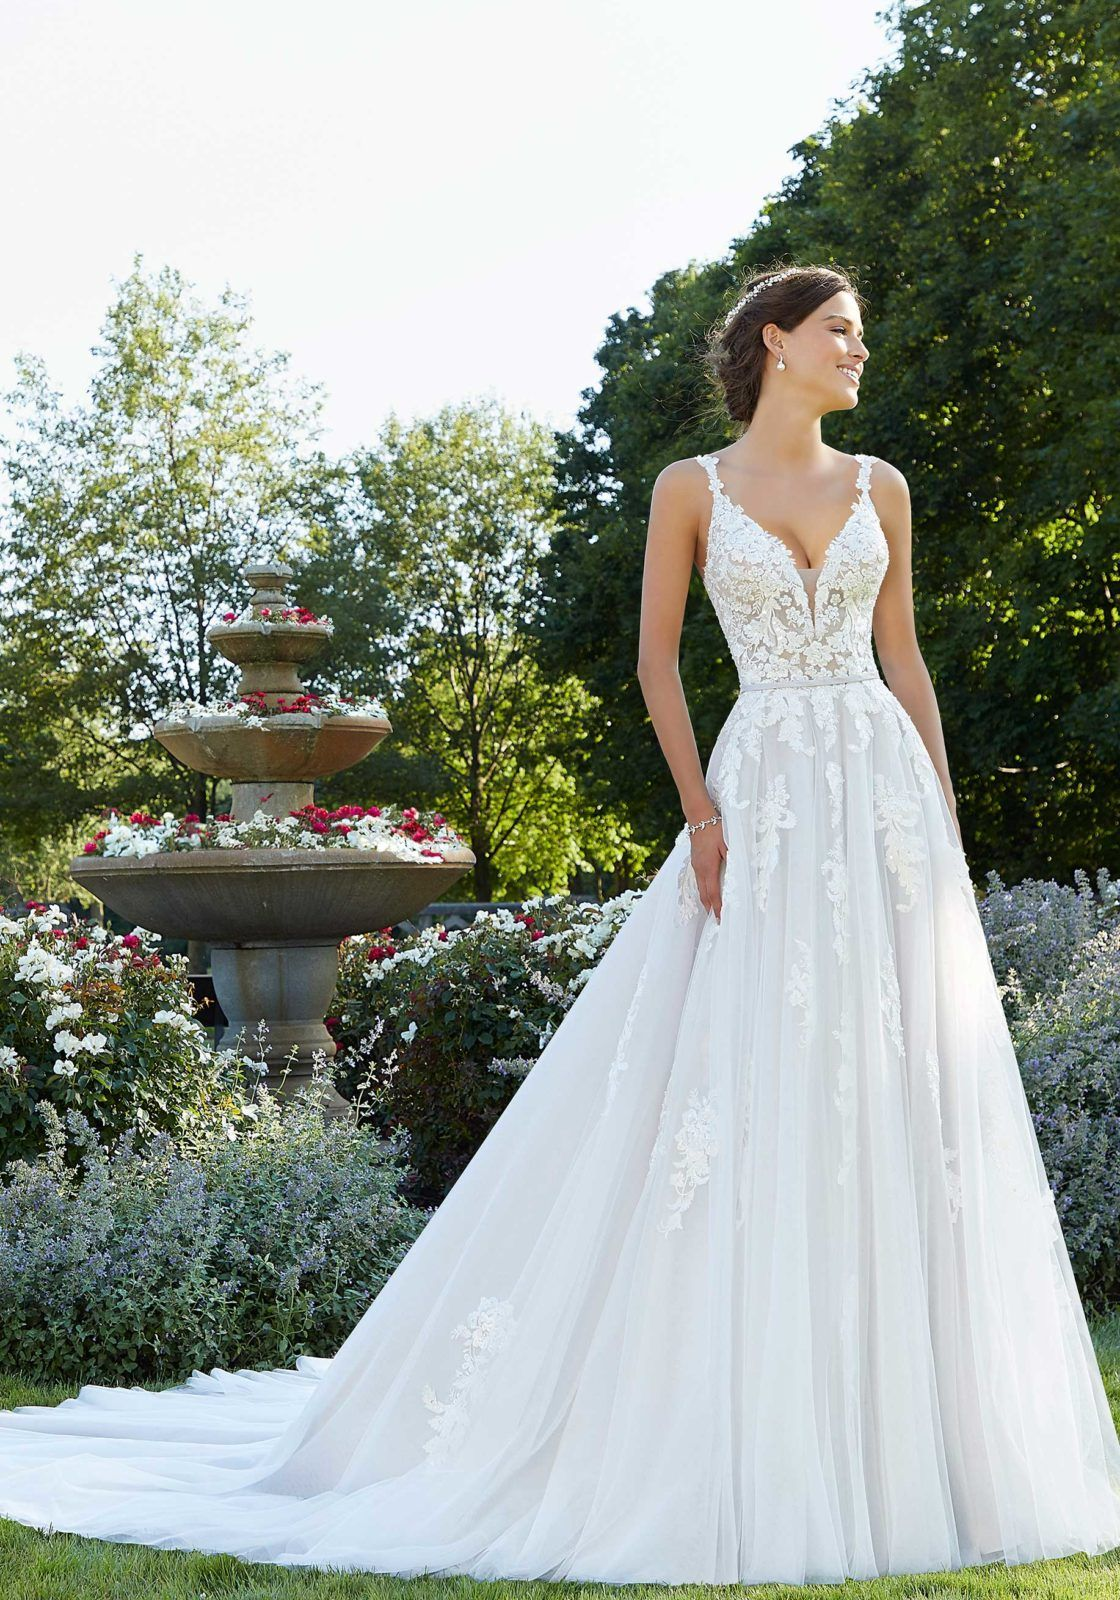 Tulle Bridal Gown In 2020 Discount Wedding Dresses Bridal Gowns Bridal